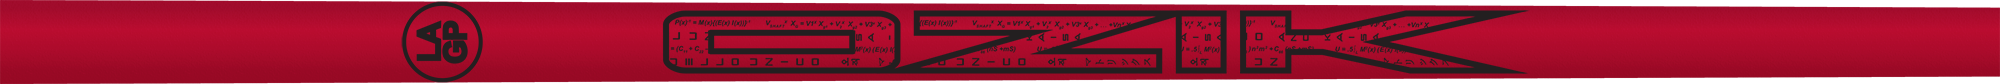 Ozik White Tie: Red Black Matte - Wood 40 A